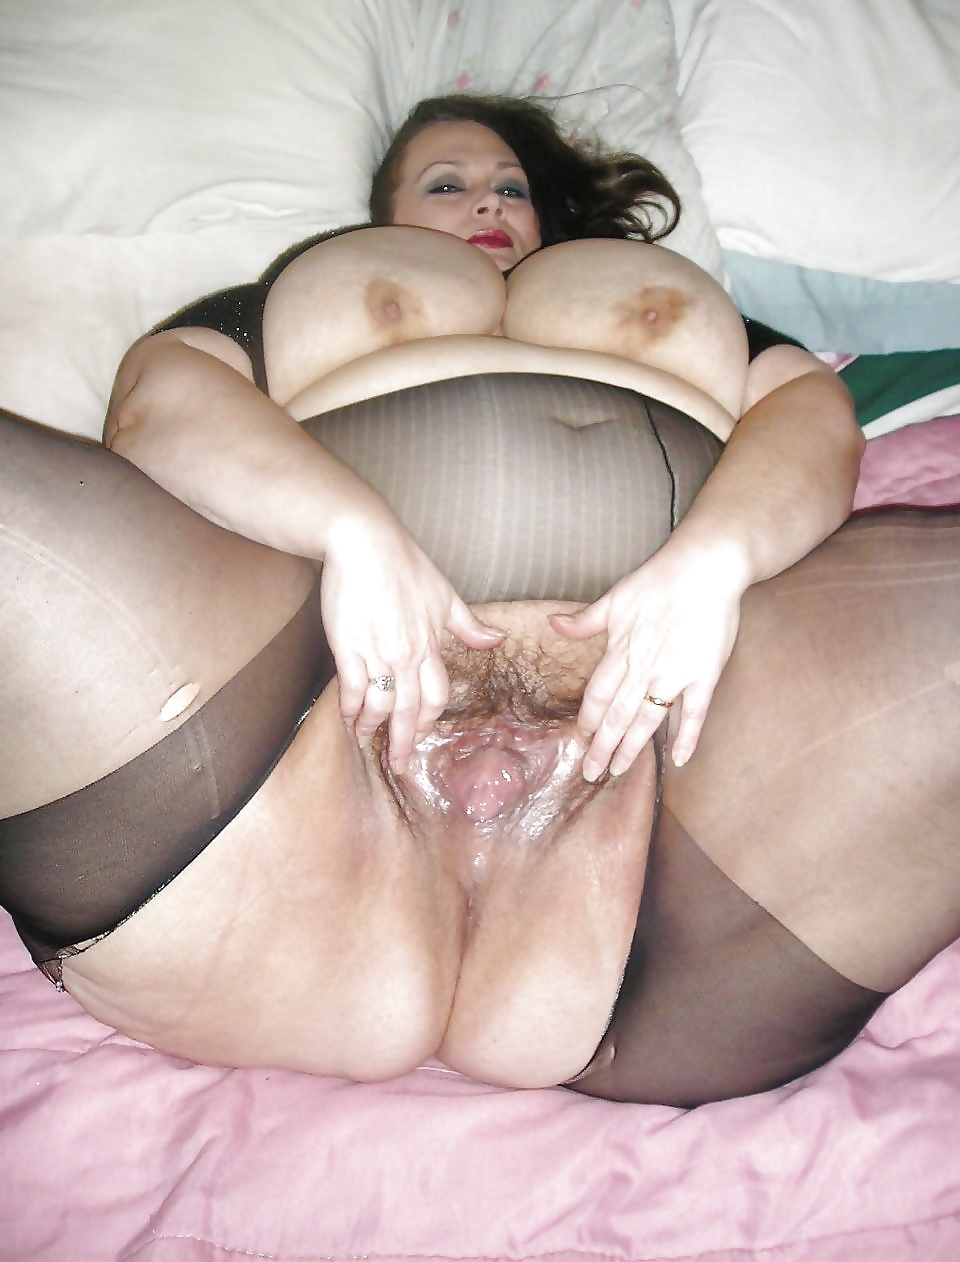 Ssbbw Jiggles And Makes Her Fat Pussy Cums With Her Fingers